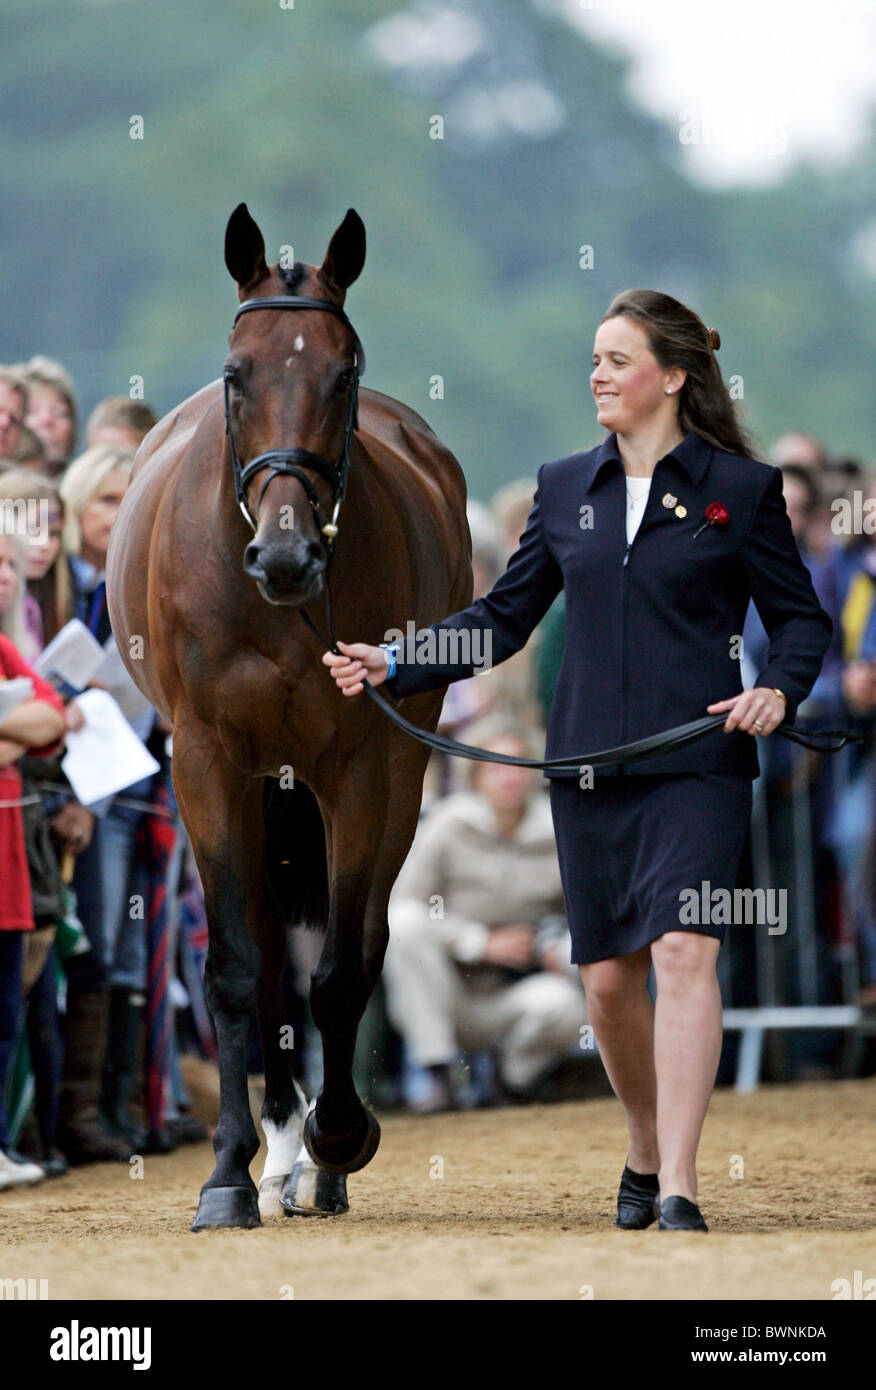 British rider, Pippa Funnell with horse Ensign trotting up at vet inspection at  Blenheim FEI Petplan European Eventing - Stock Image